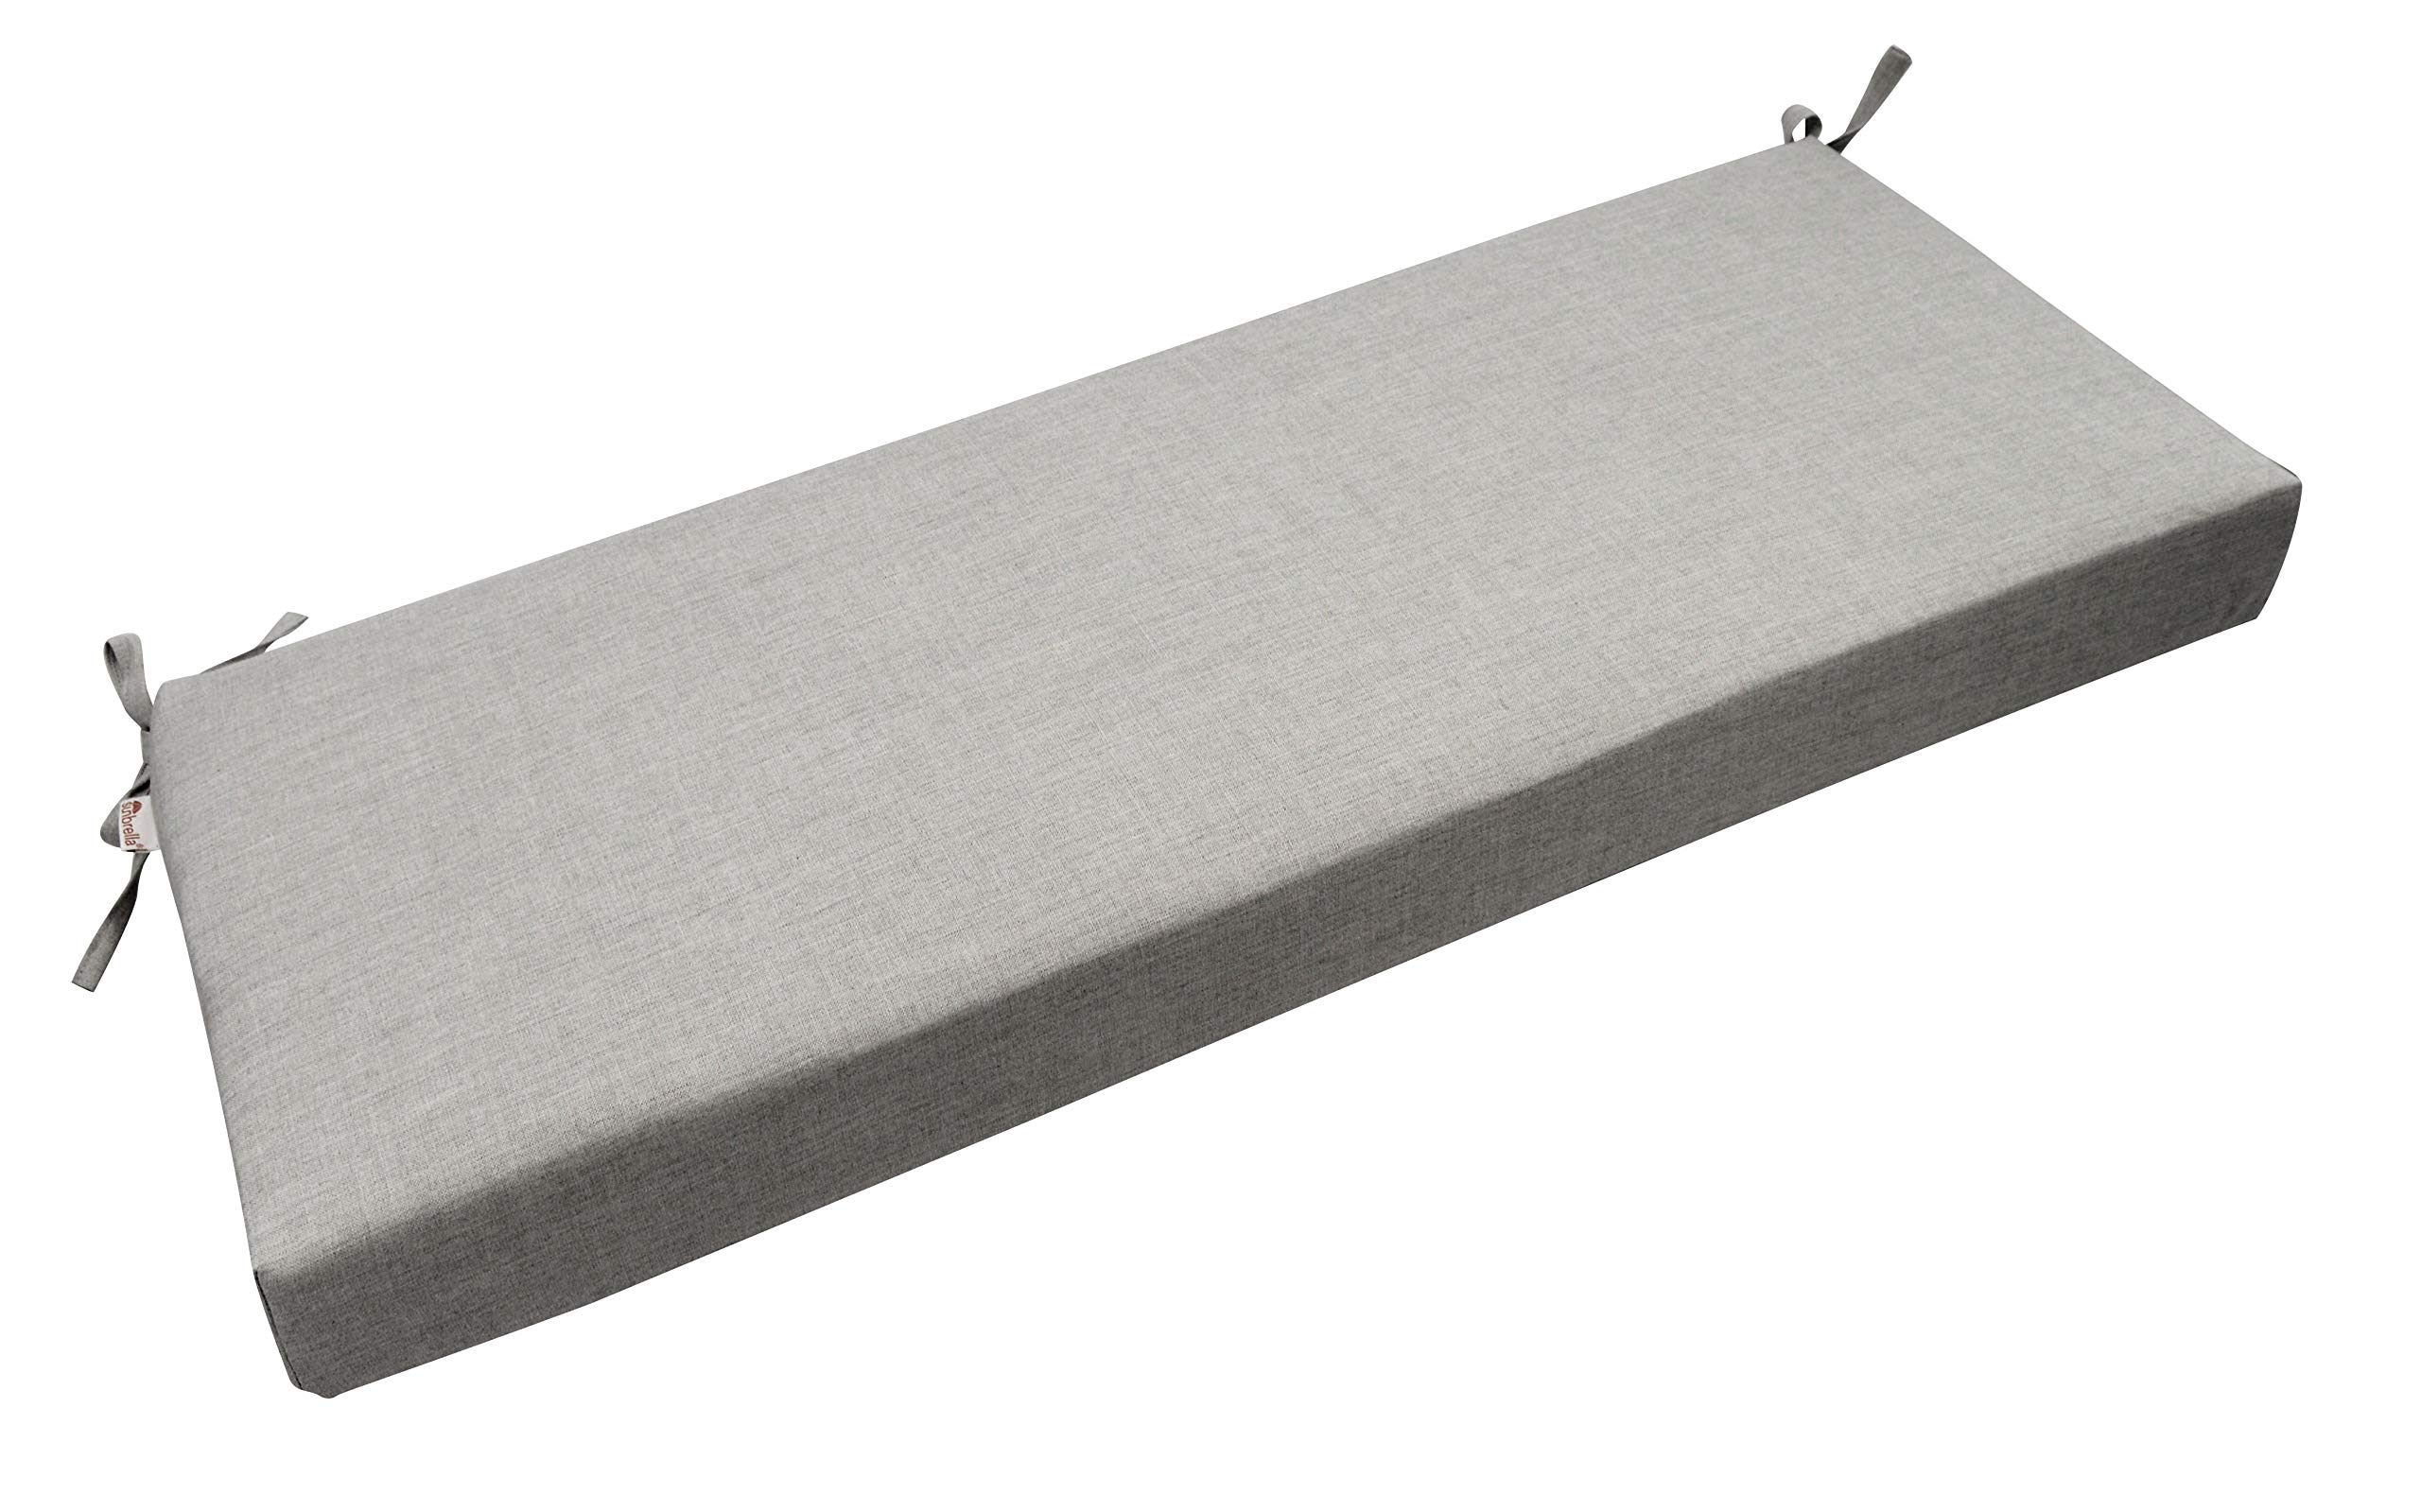 RSH Décor Indoor/Outdoor Bench Cushion Made from Premium Sunbrella Cast Silver Grey/Gray Fabric - 3'' Thick Foam Bench Pad with Ties - Choose Size (60'' x 18'')